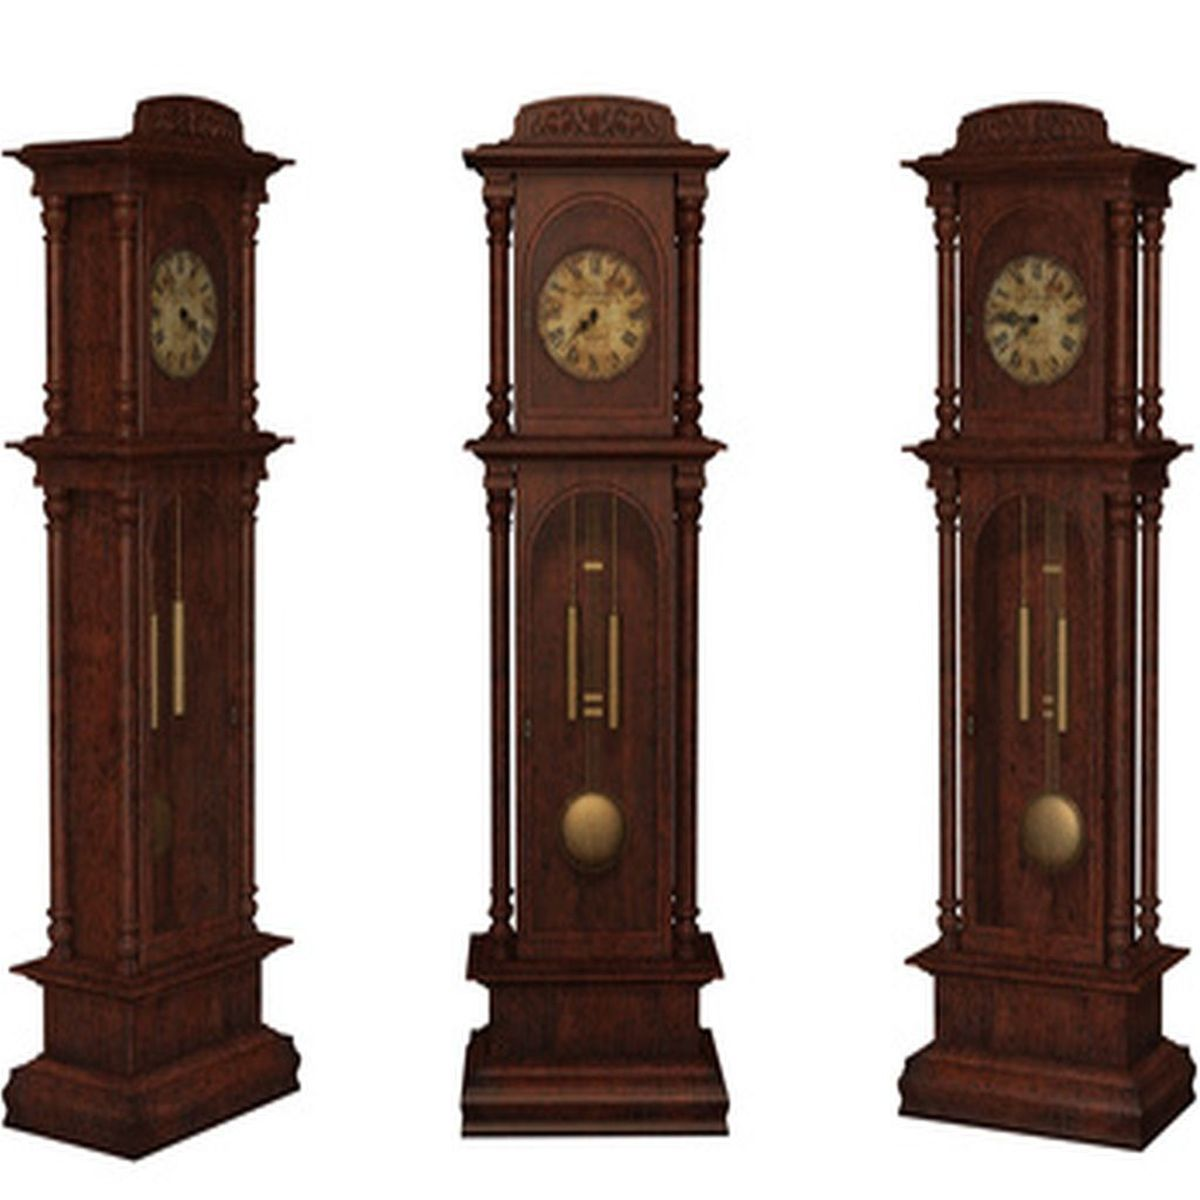 Ridgeway Grandfather Clocks - Watch and Clock Repair